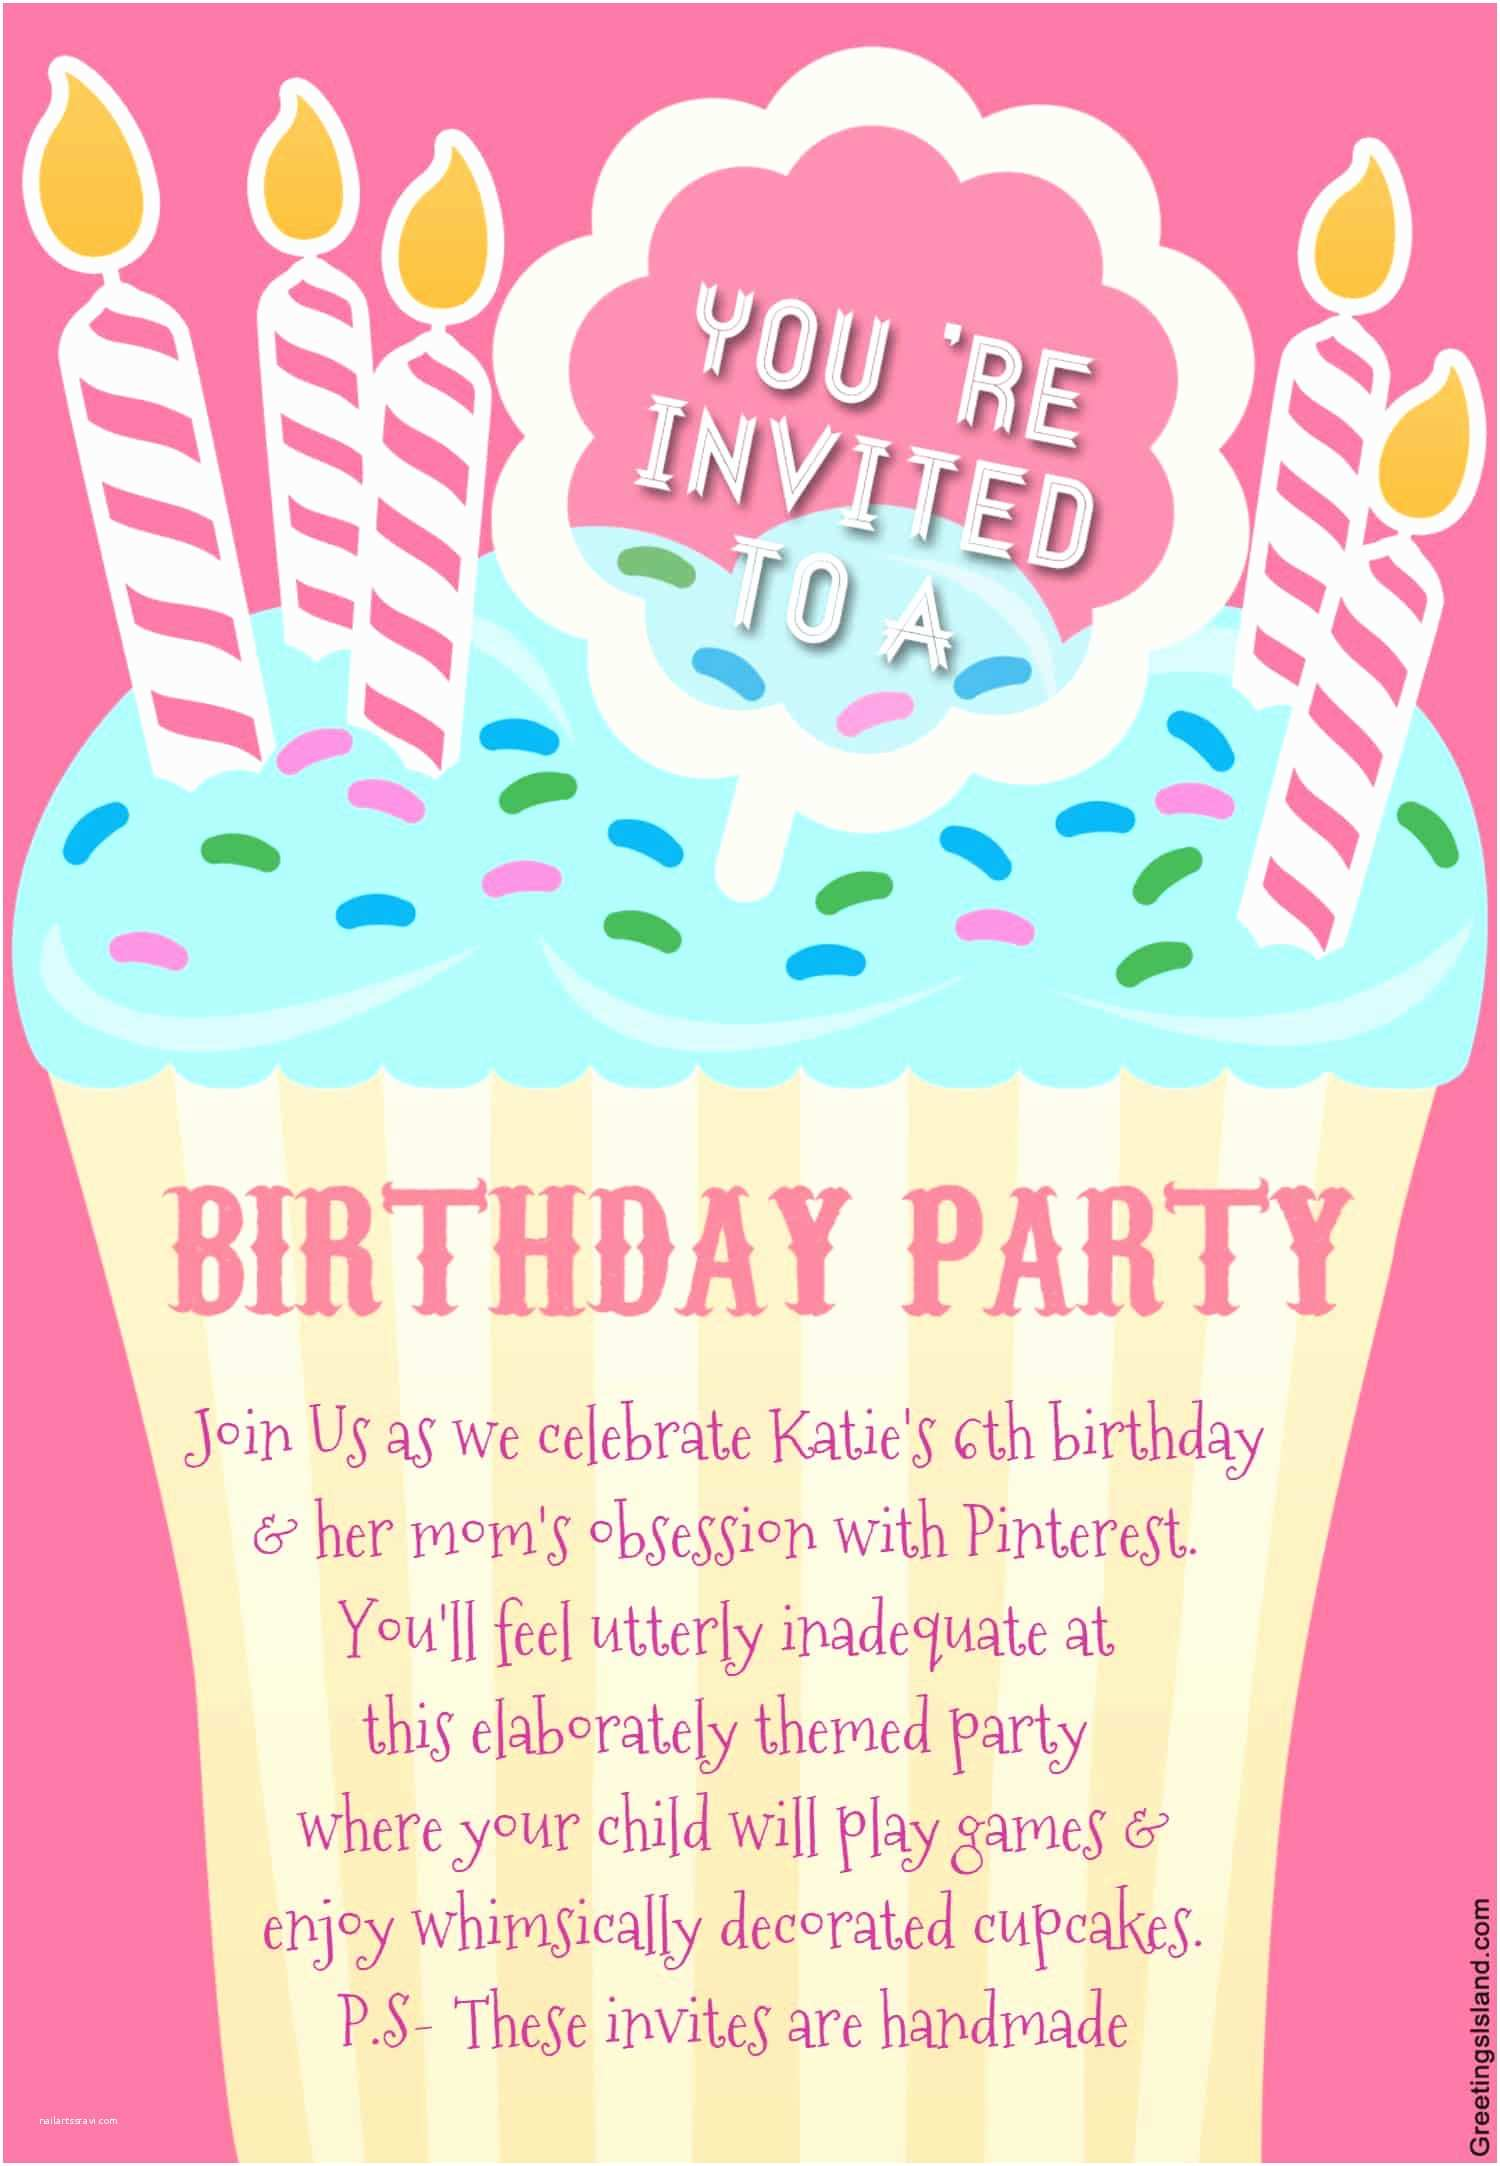 Free Party Invitation Template Honest Birthday Party Invitations